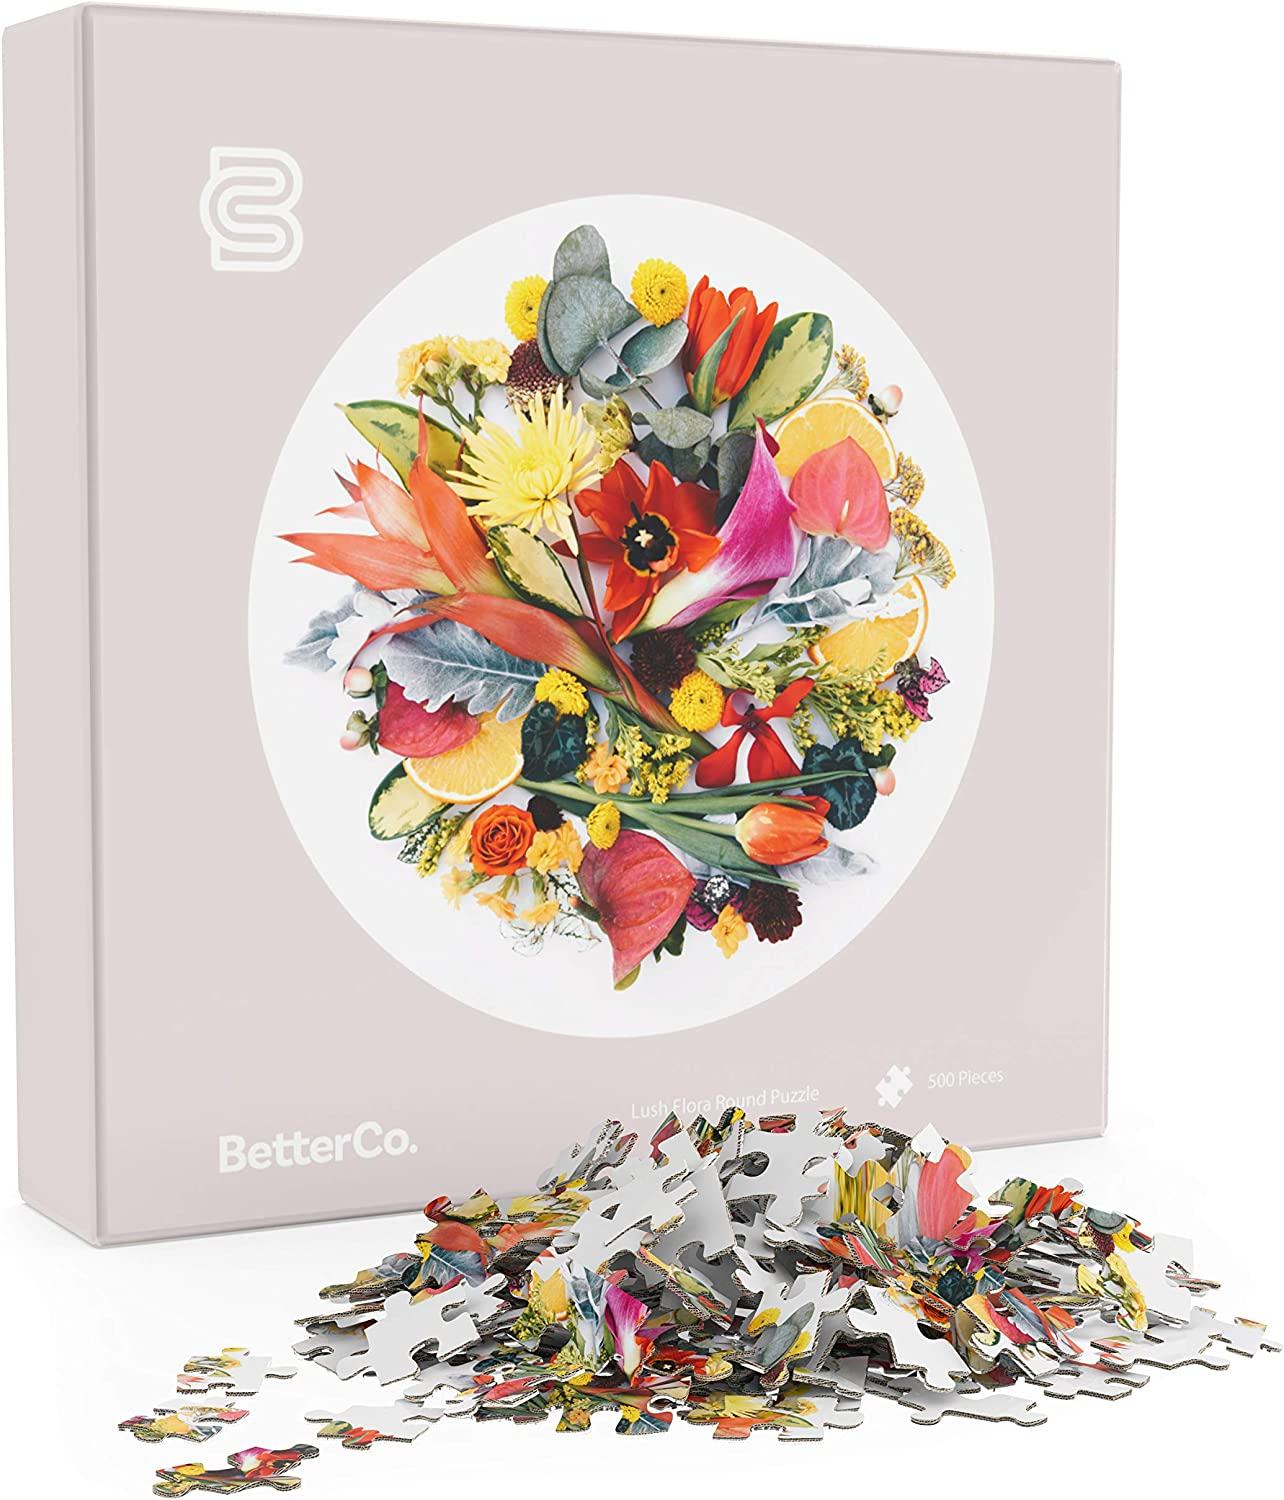 Challenge Yourself with These Pieces Puzzle for Adults Lush Flora Puzzle Difficult Jigsaw Puzzles Pieces and Kids Teens BetterCo